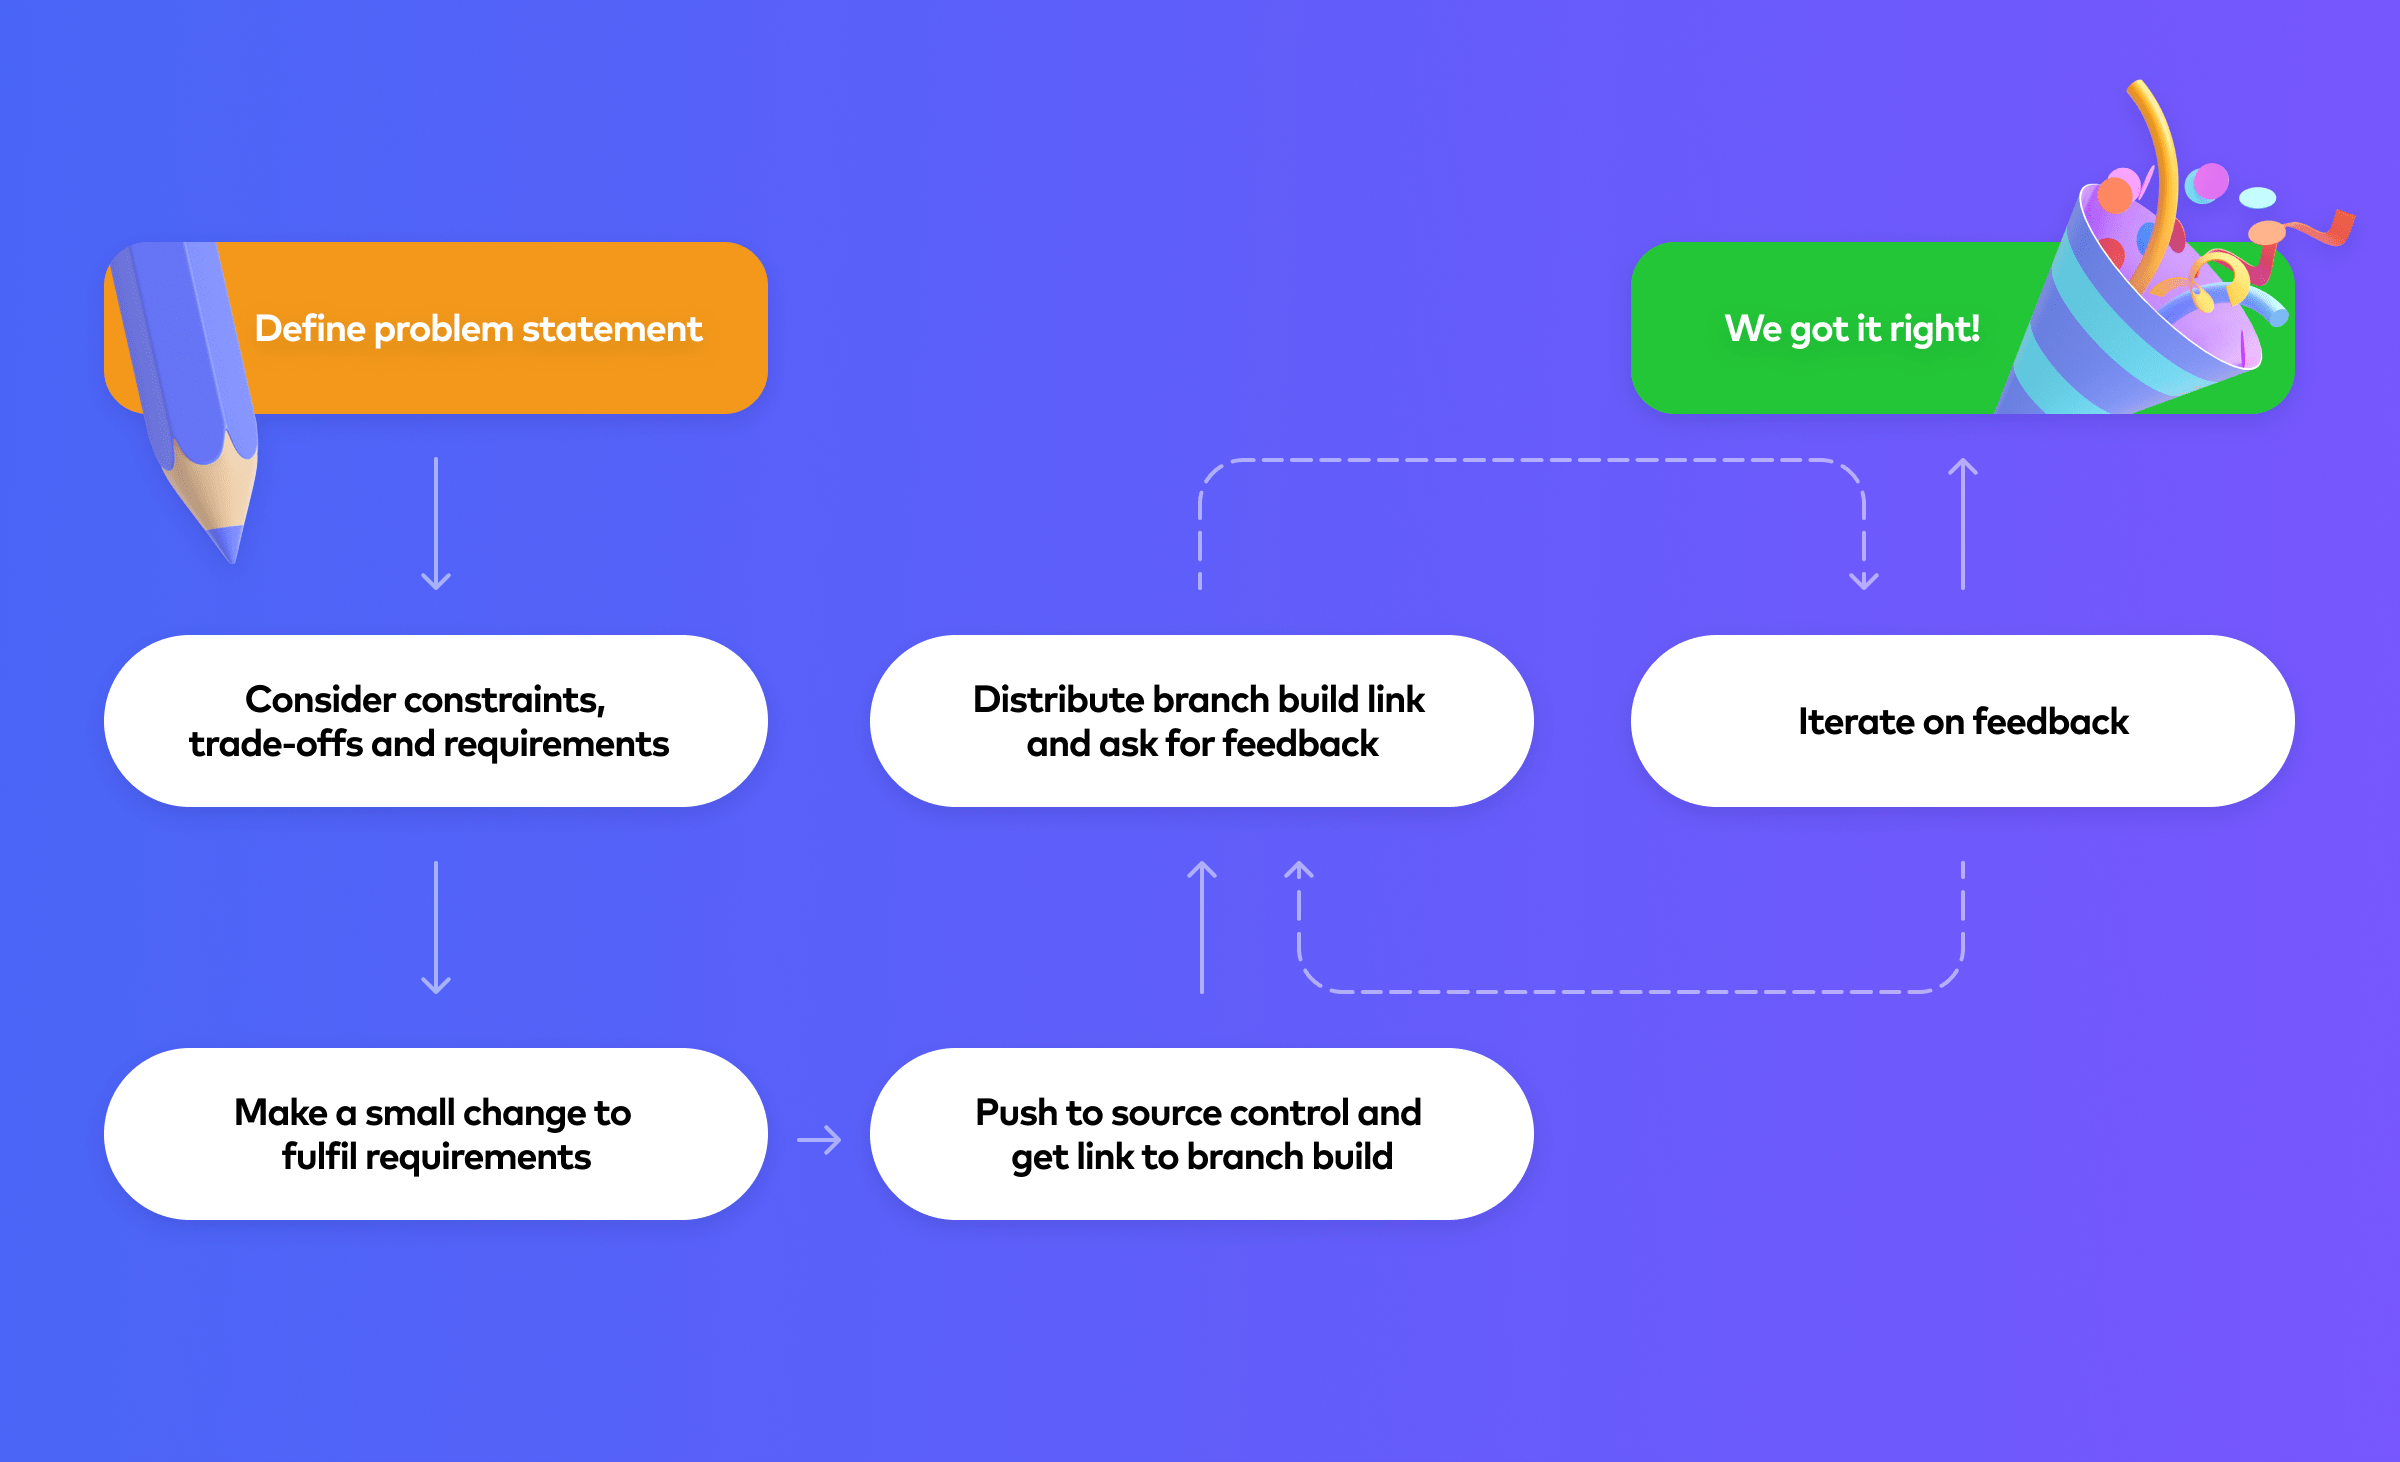 An example process for testing a new feature or improvement